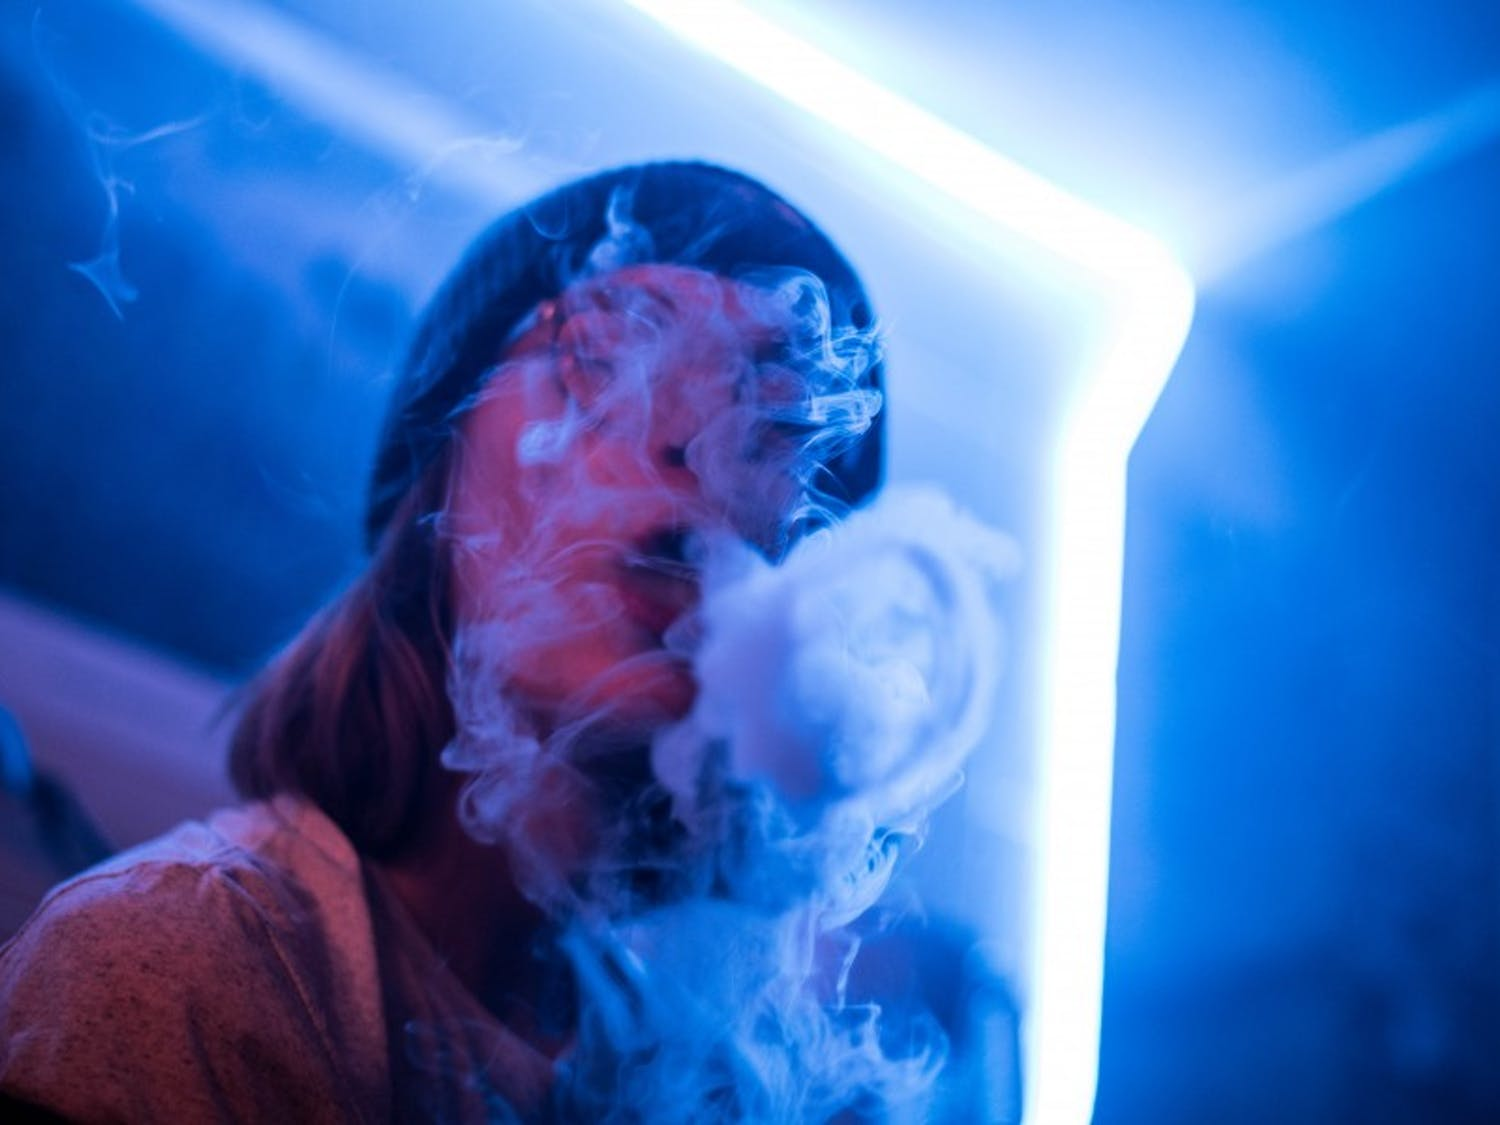 Vaping has become a staple of college culture at UW-Madison — but now the consequences are severe.